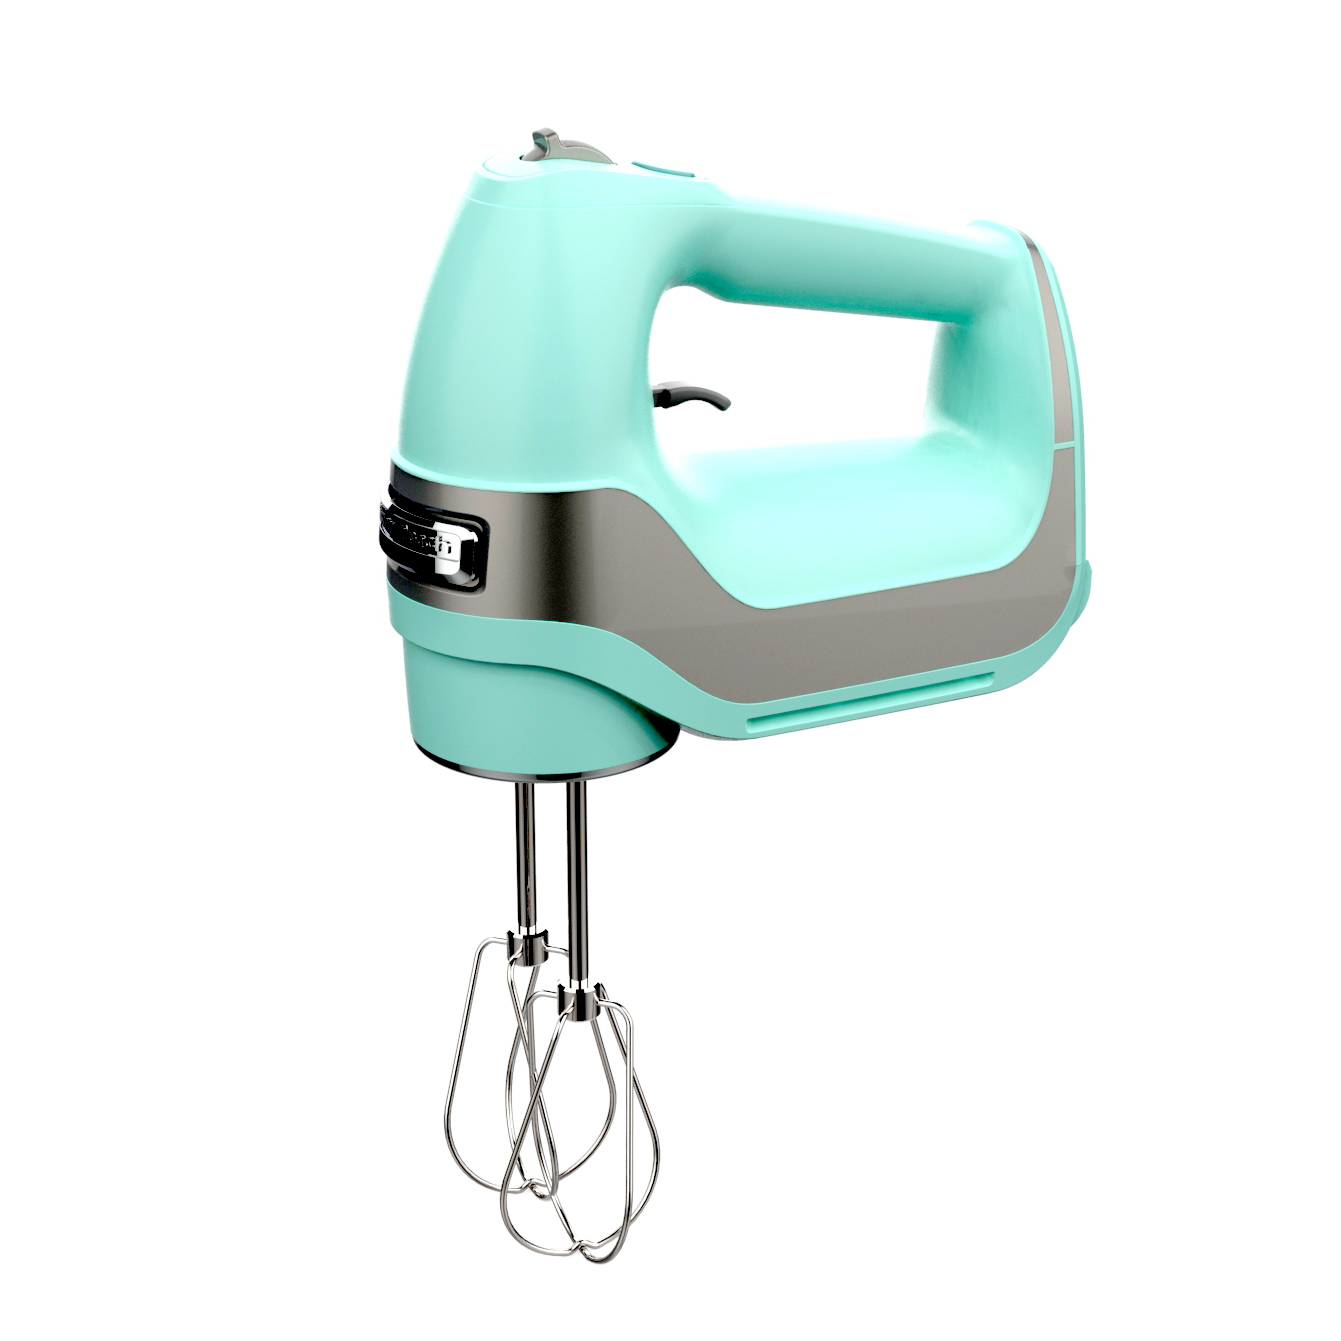 Hamilton Beach® Professional Hand Mixer 5 Speed, Mint (62658)